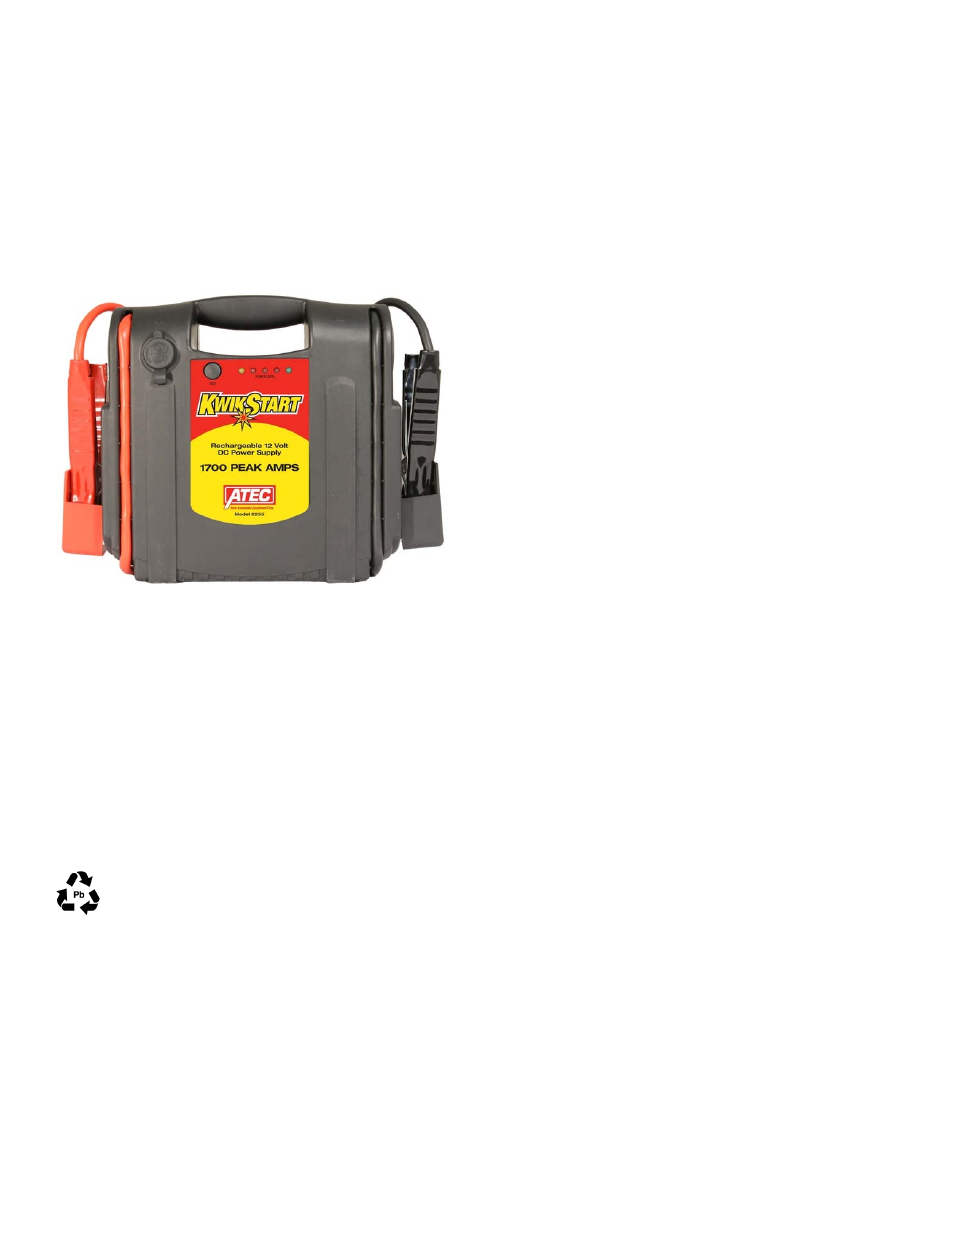 Associated Equipment 6255 User Manual 4 Pages 12v Powered Lead Acid Battery Charger With Indicator